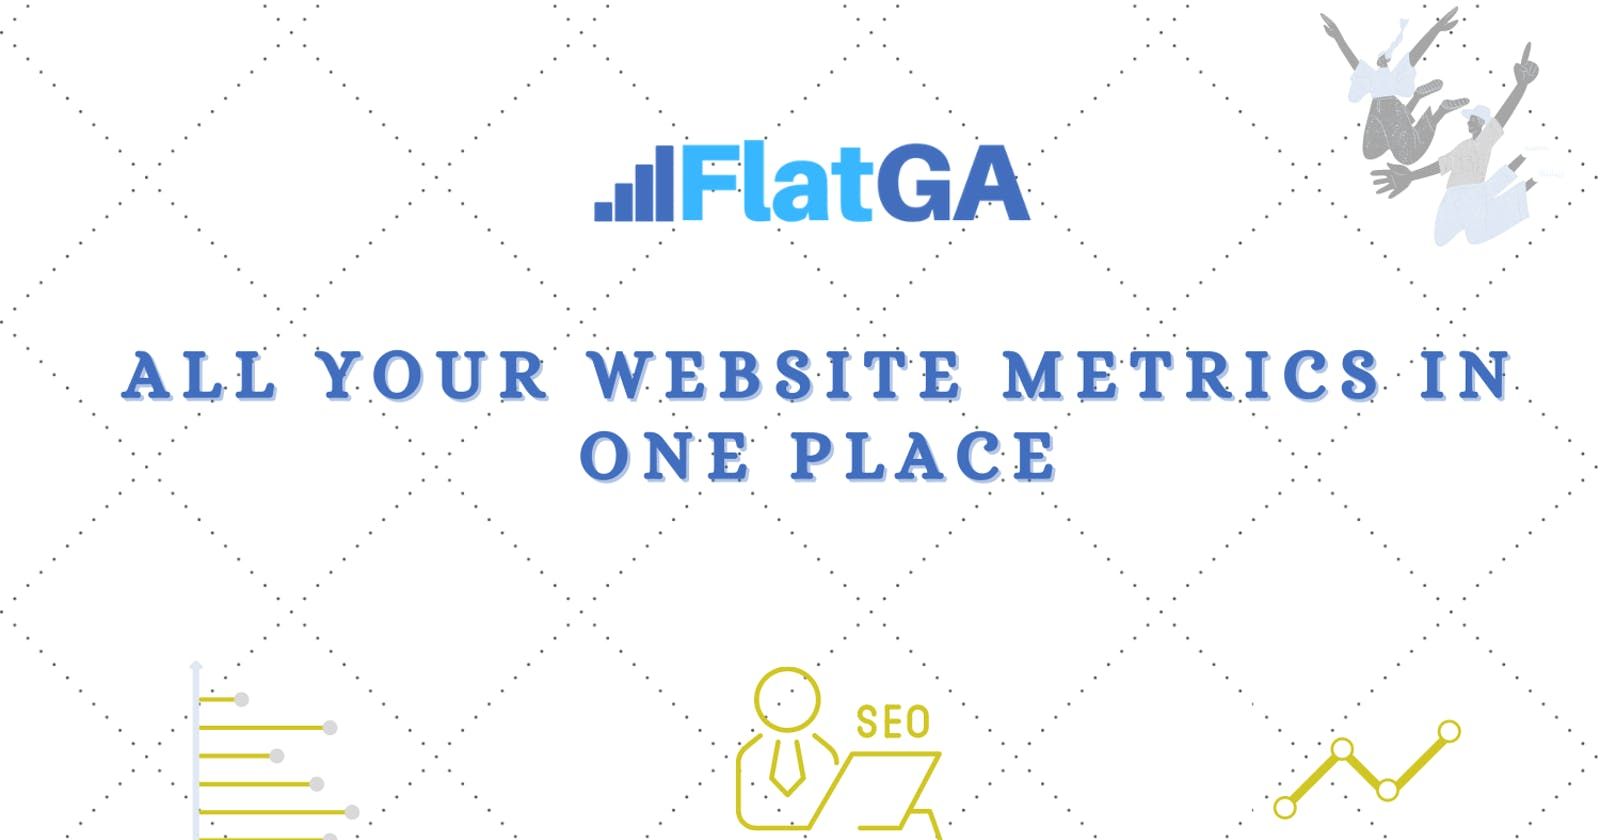 Getting started with FlatGA